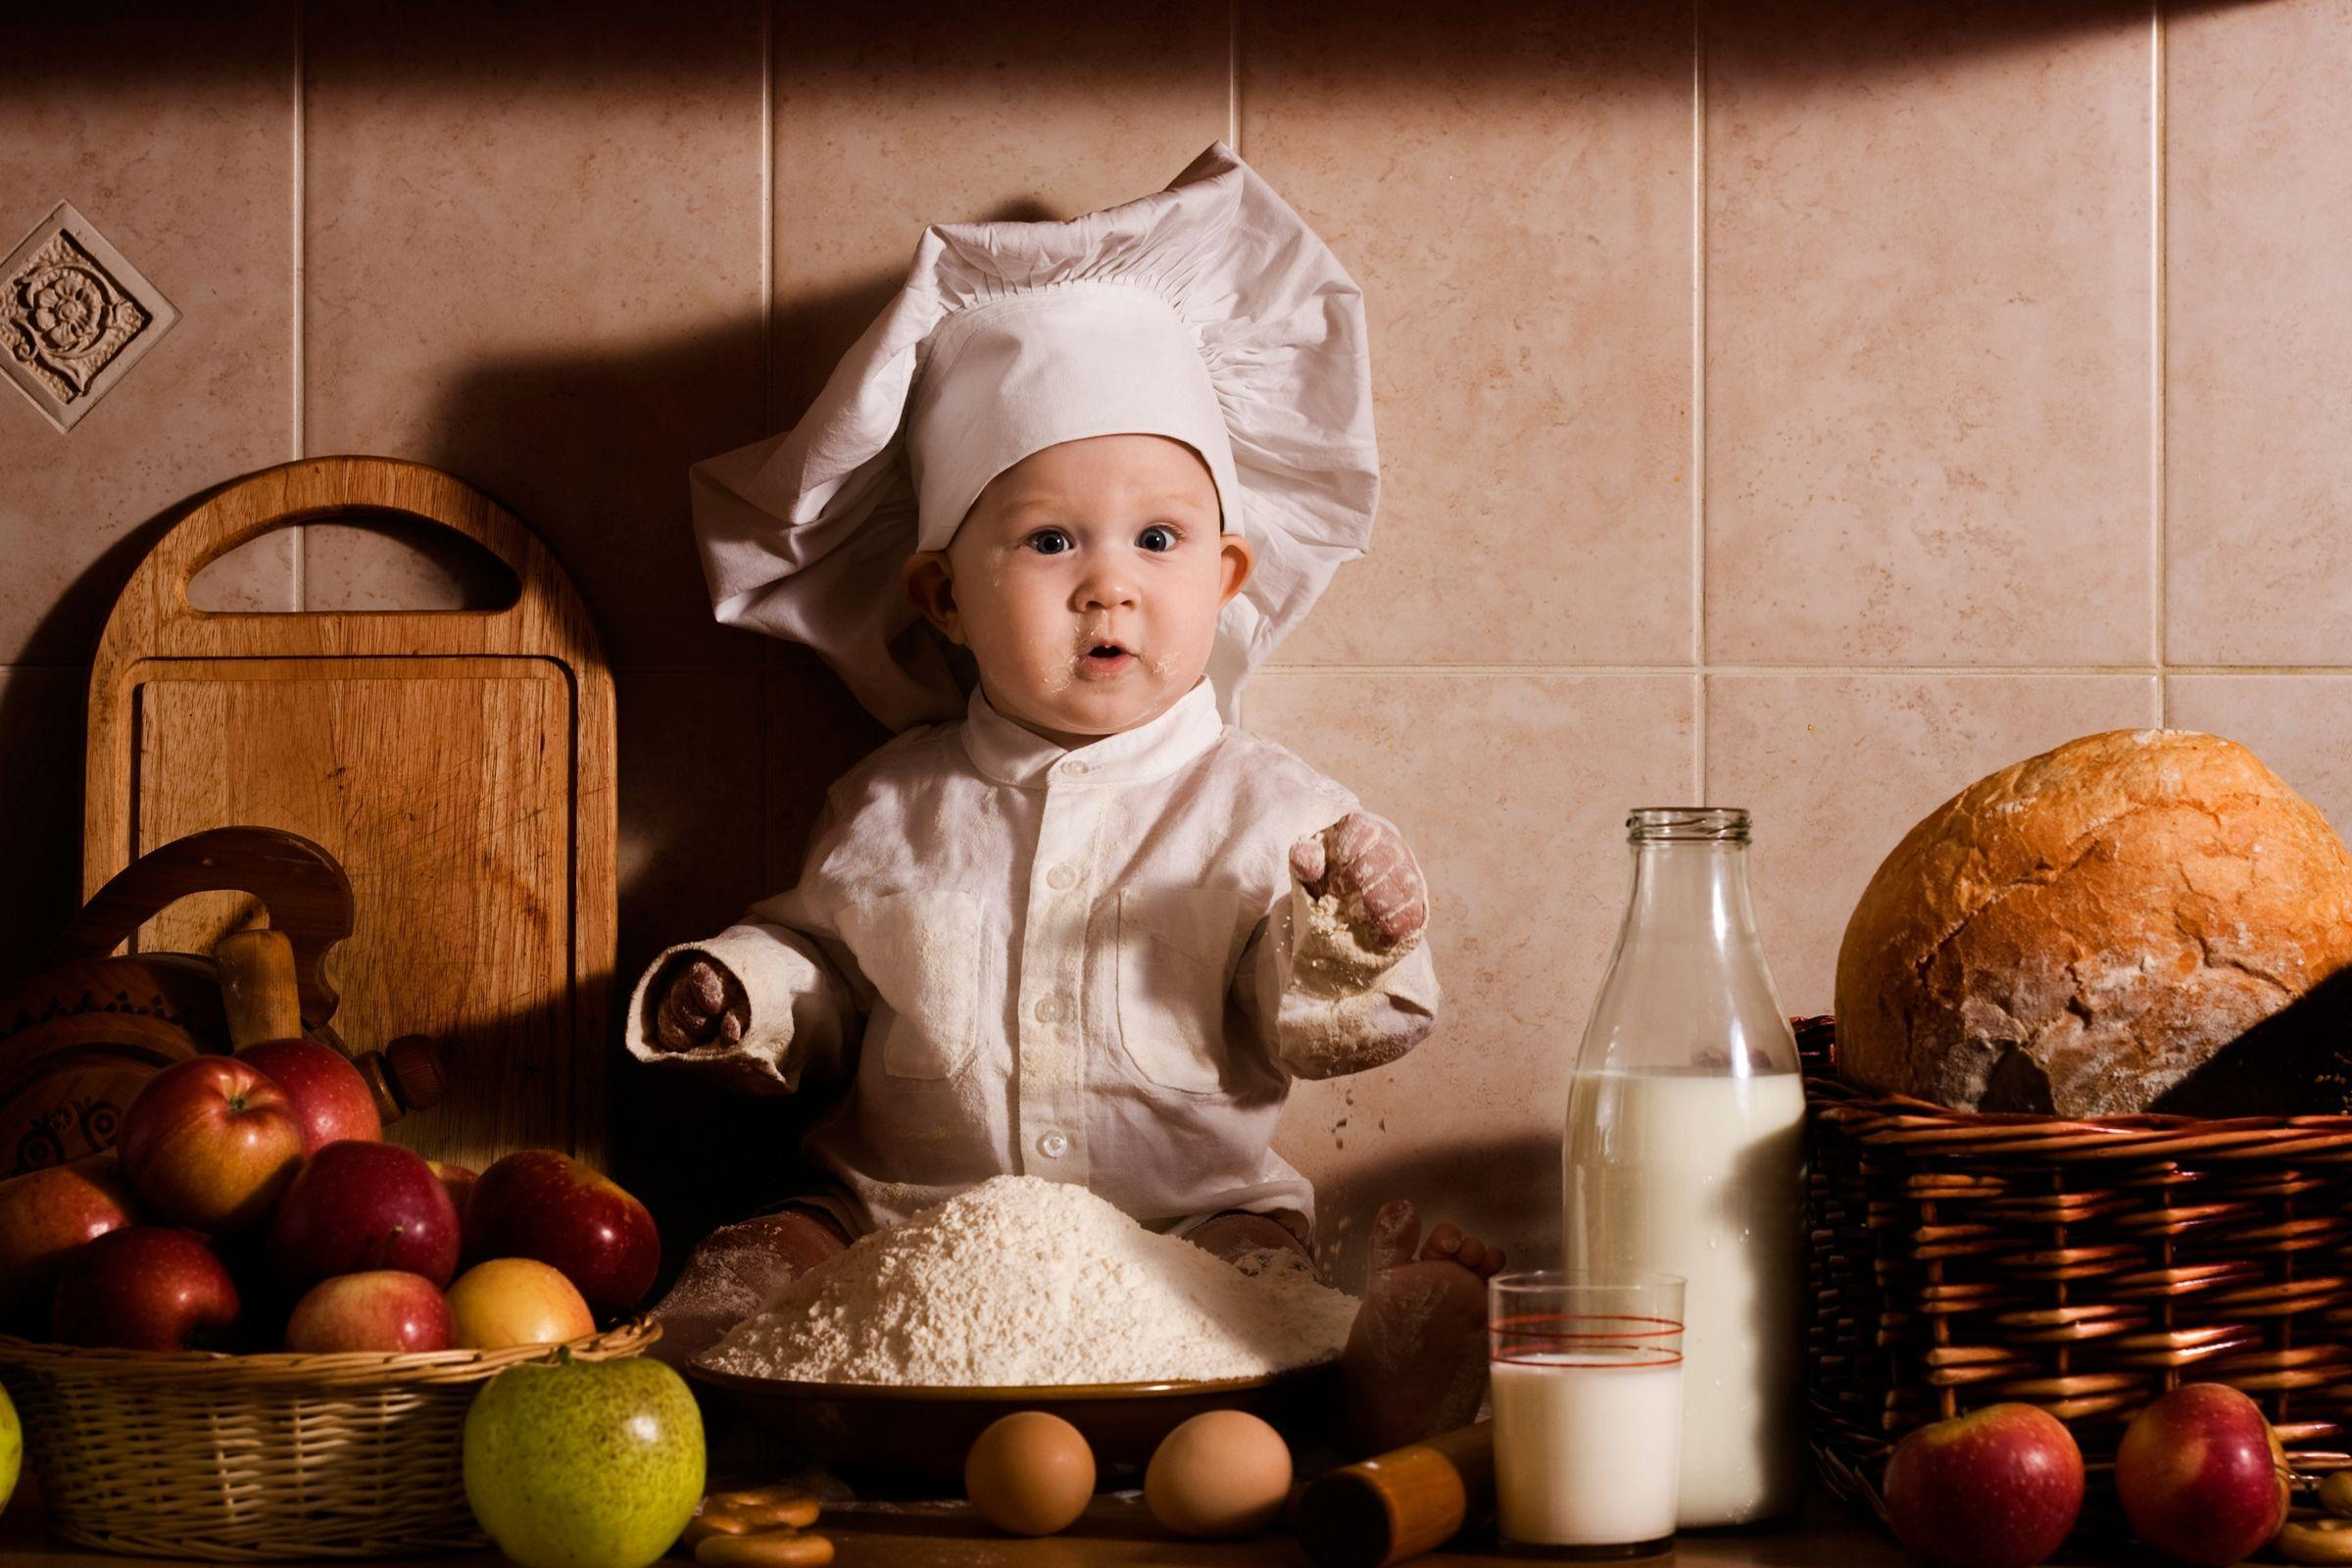 Chef Wallpapers - Wallpaper Cave